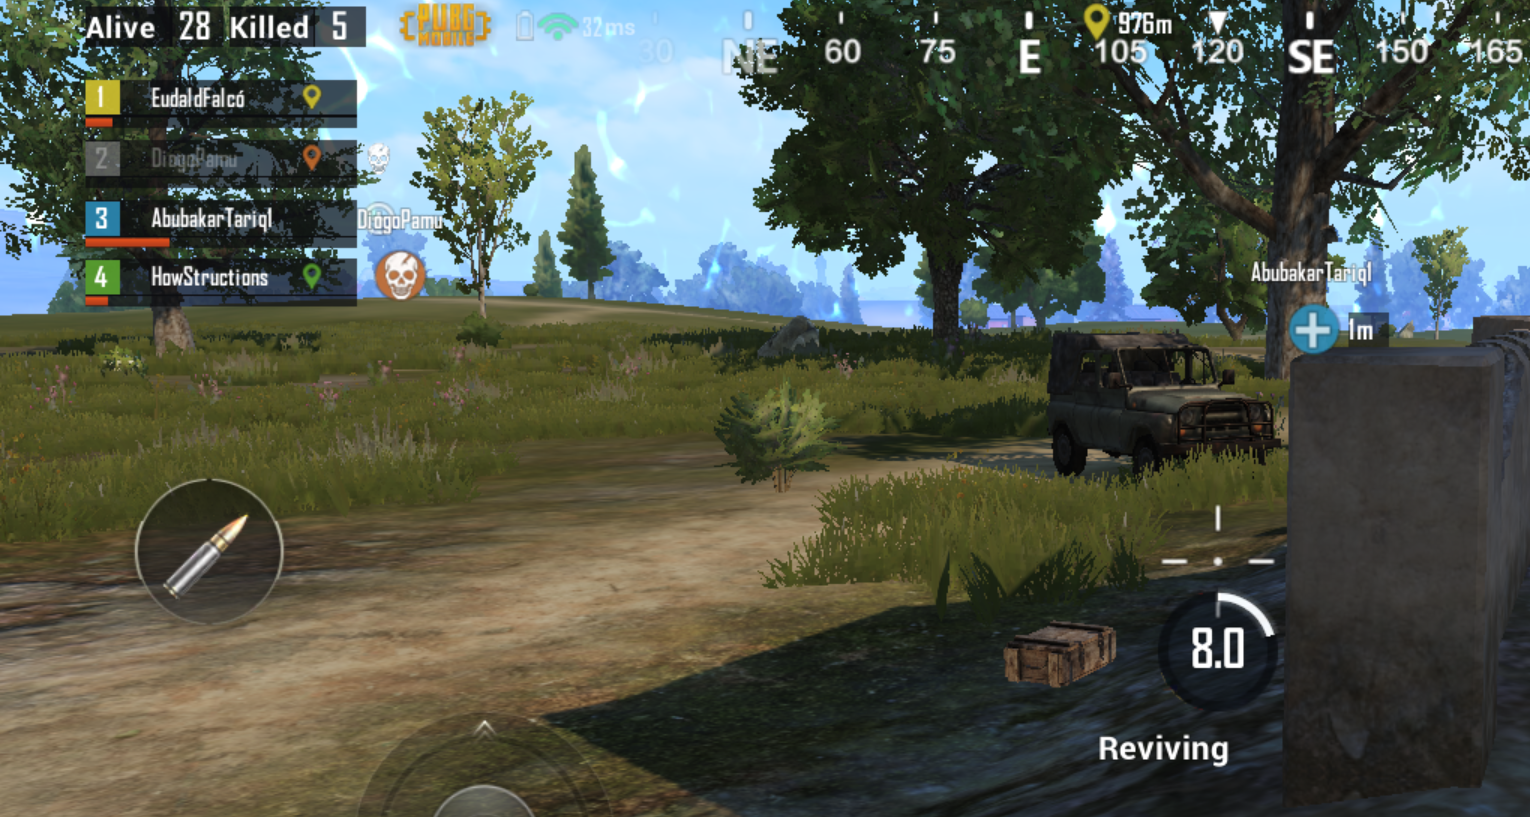 How To Revive A Knocked Down Squad Member In Pubg Mobile